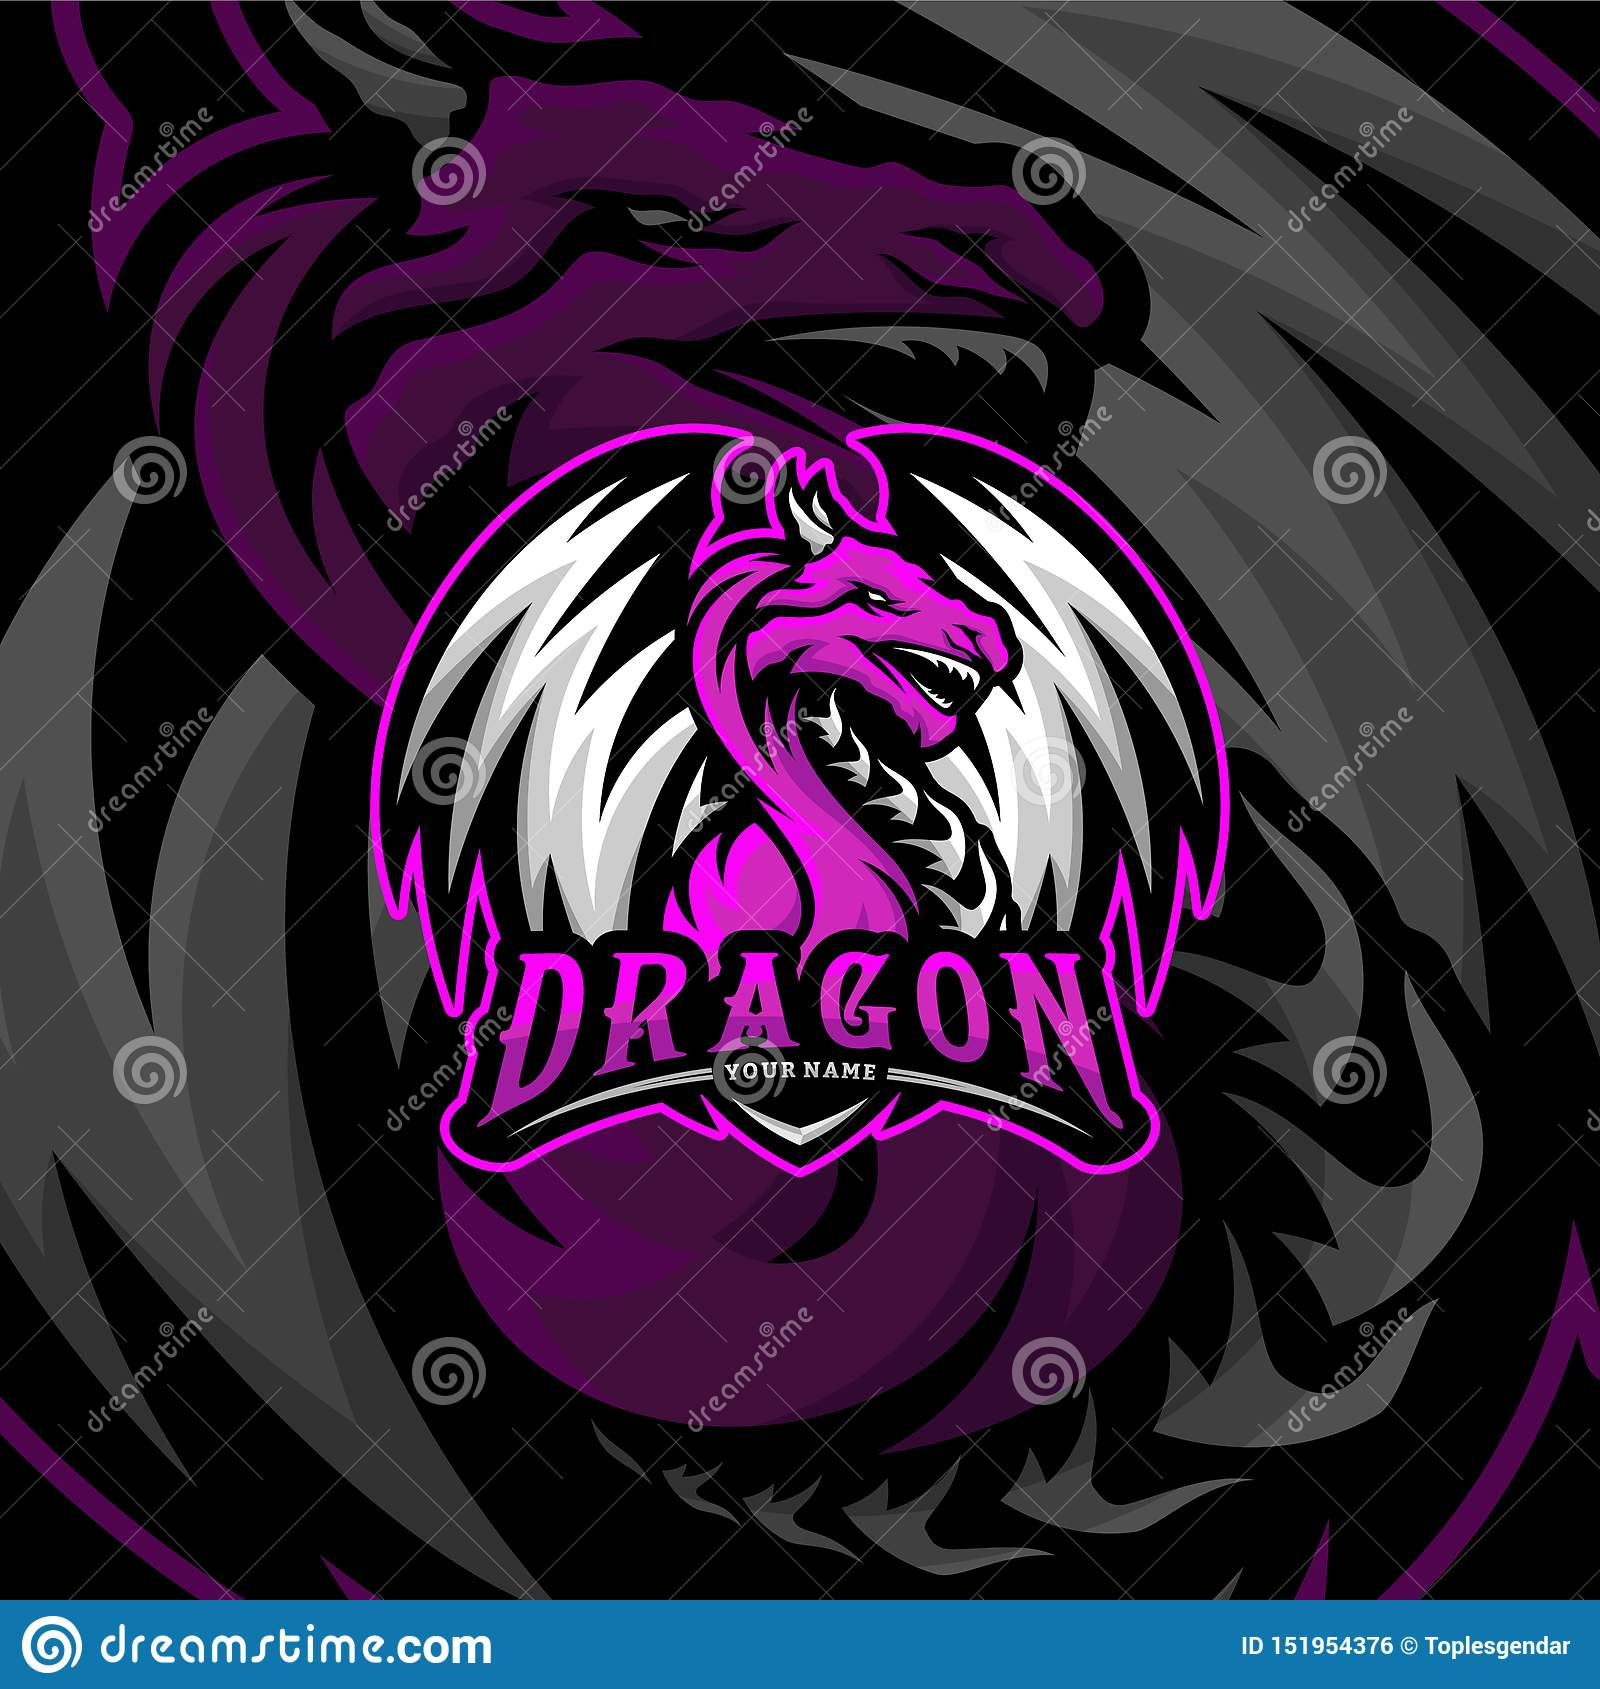 Dragon Esports Logo Design Vector Dragon Mascot Gaming Logo Concepts Stock Vector Illustration Of Design Aggressive 151954376